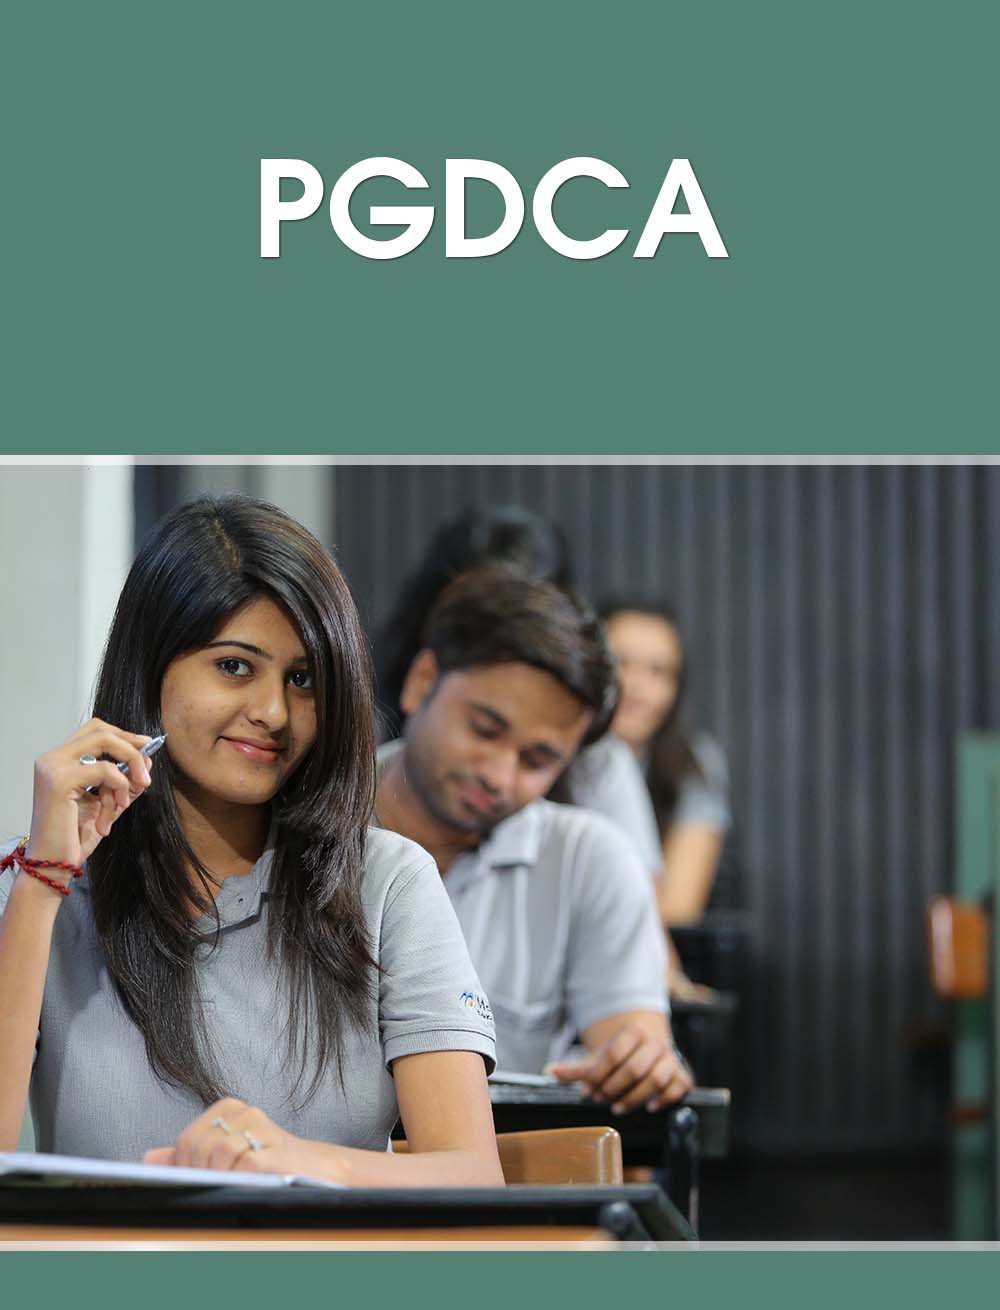 best pgdca colleges in Gujarat